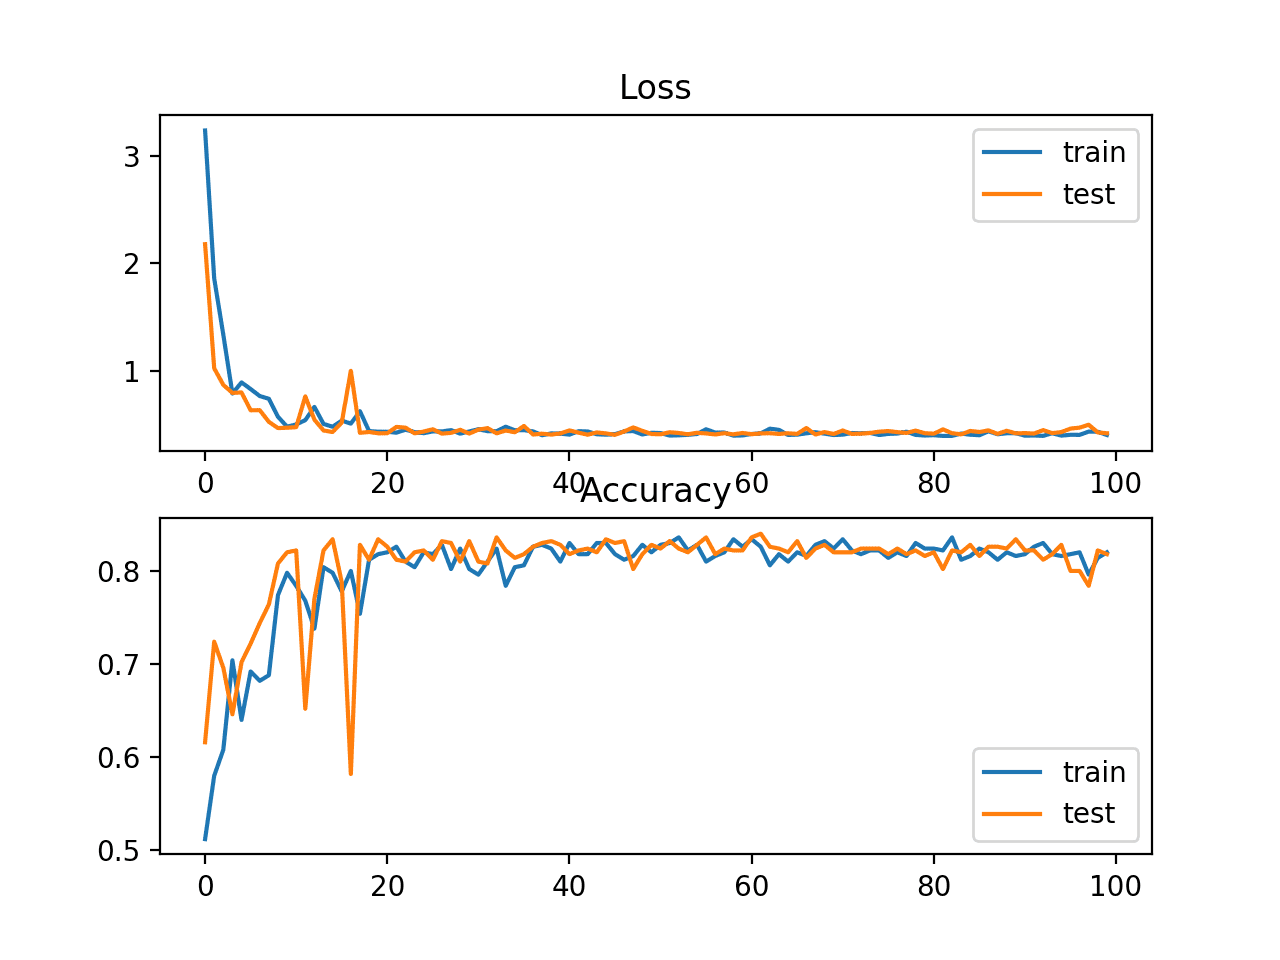 Line Plots of Sparse Cross Entropy Loss and Classification Accuracy over Training Epochs on the Blobs Multi-Class Classification Problem